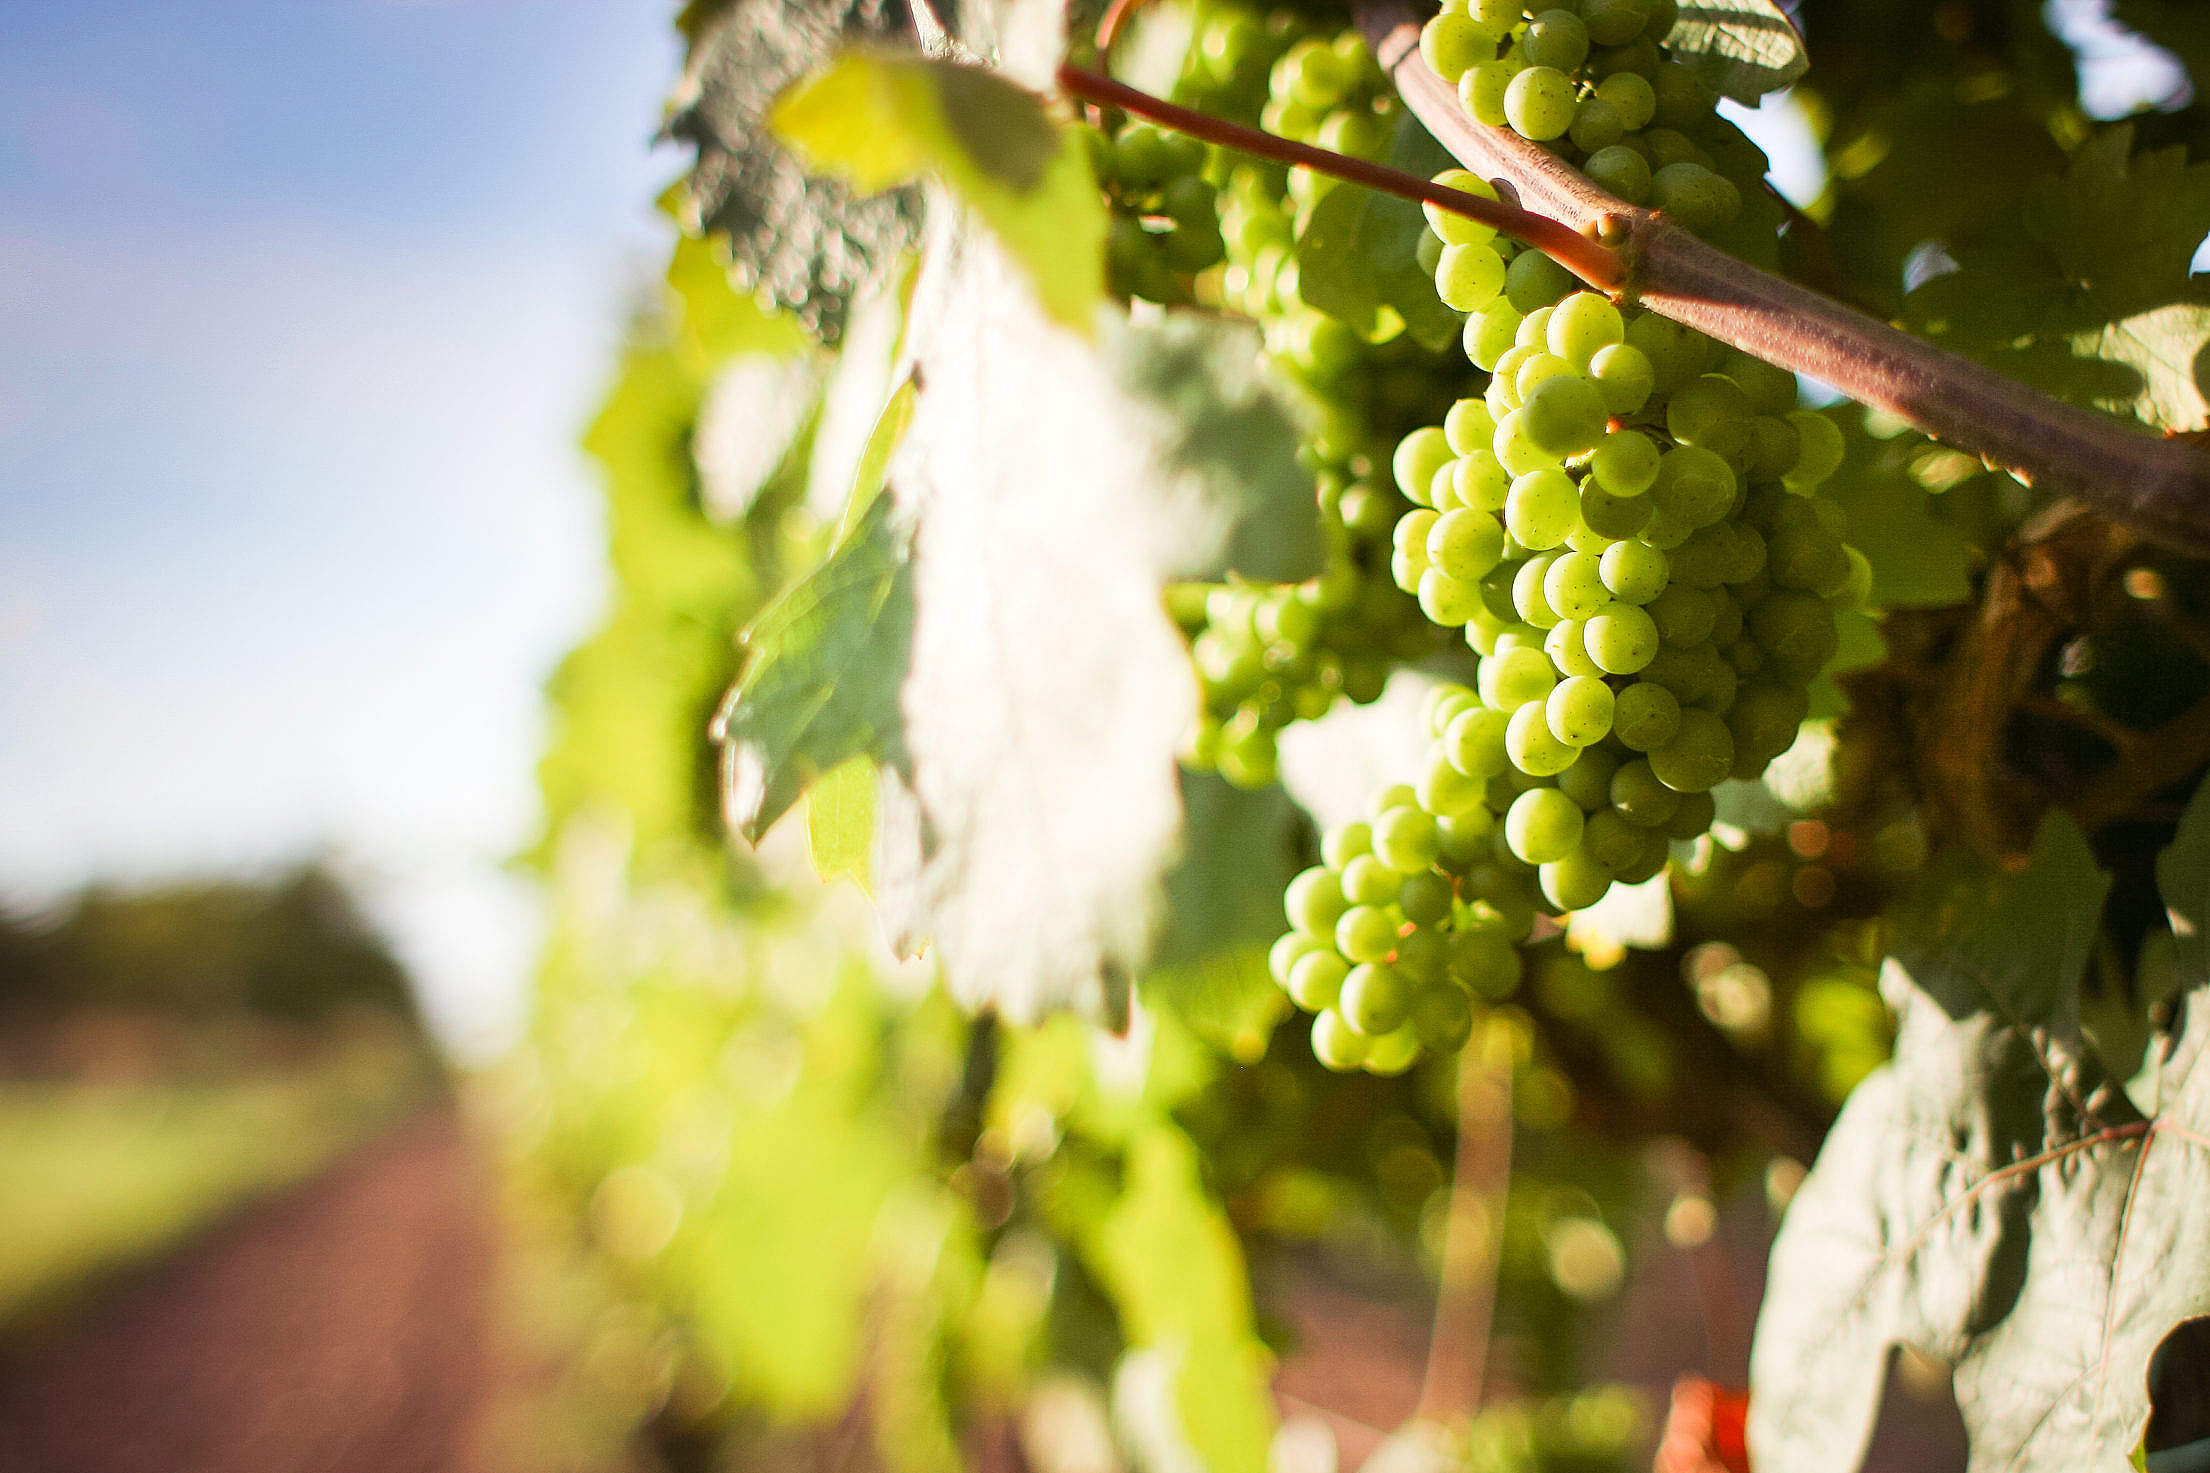 Grapevine with Detail of Grapes Free Stock Photo